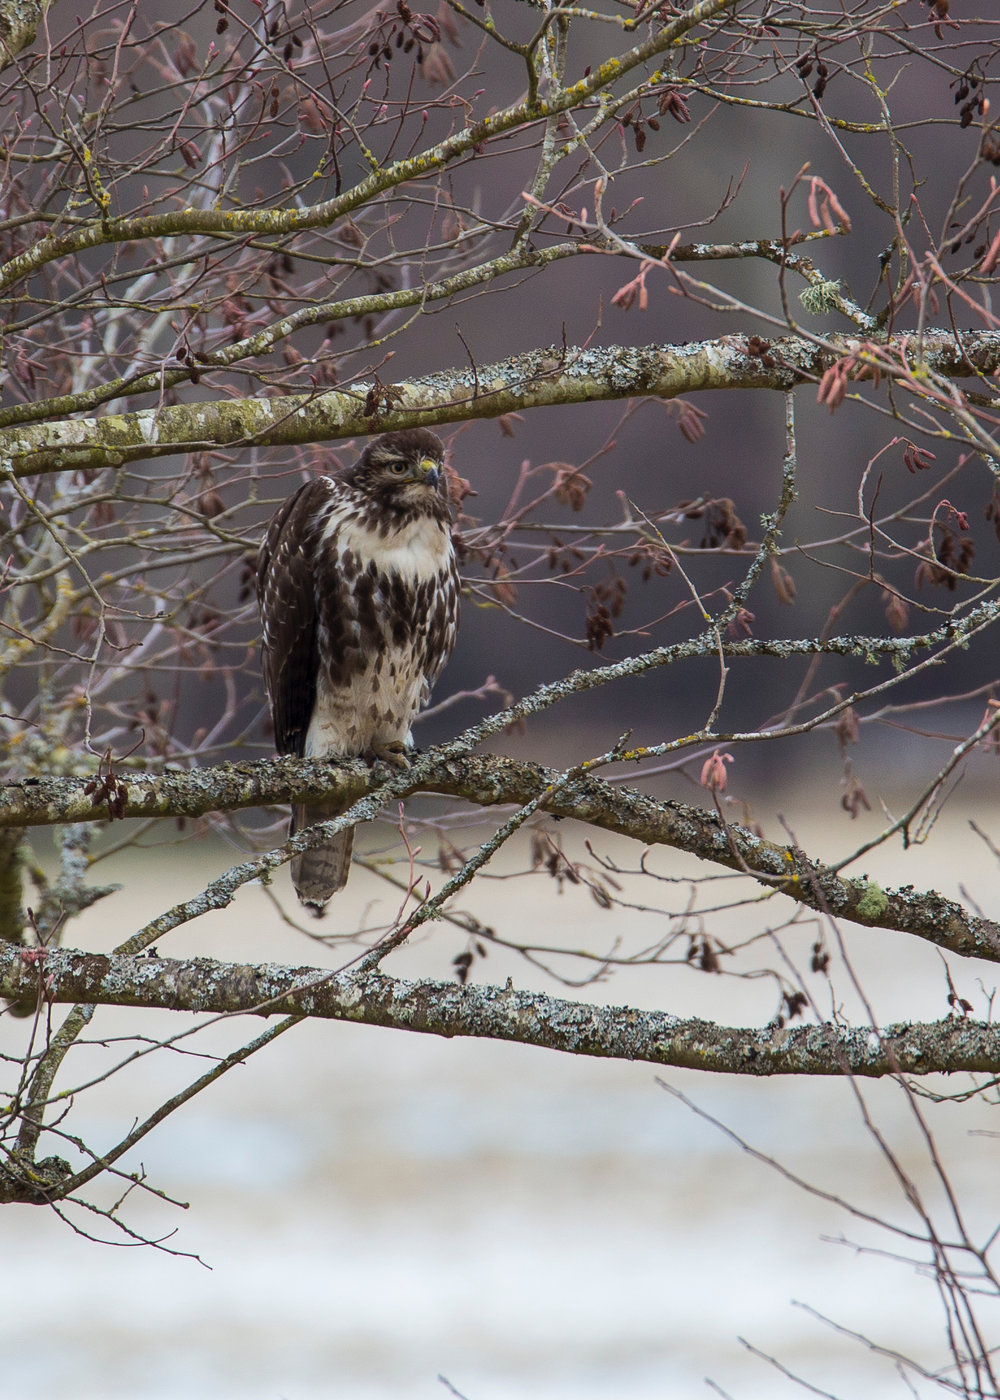 As we were headed out, we spotted a second red-tailed hawk along the water.